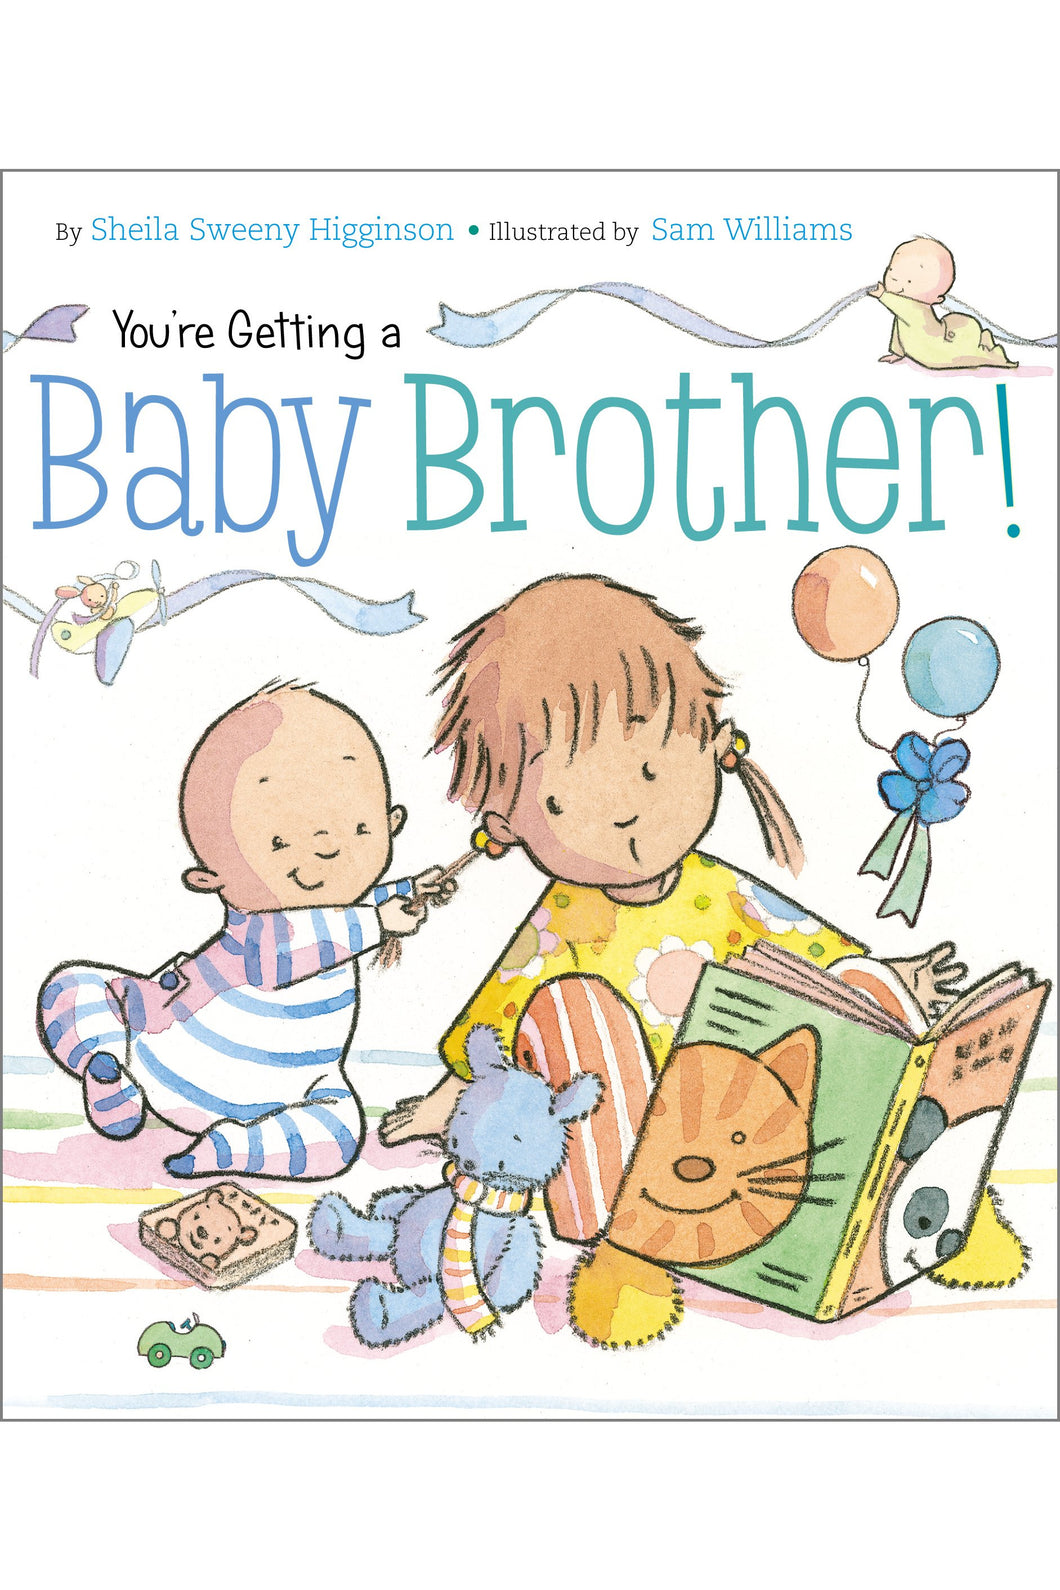 YOU'RE GETTING A GETTING A BABY BROTHER